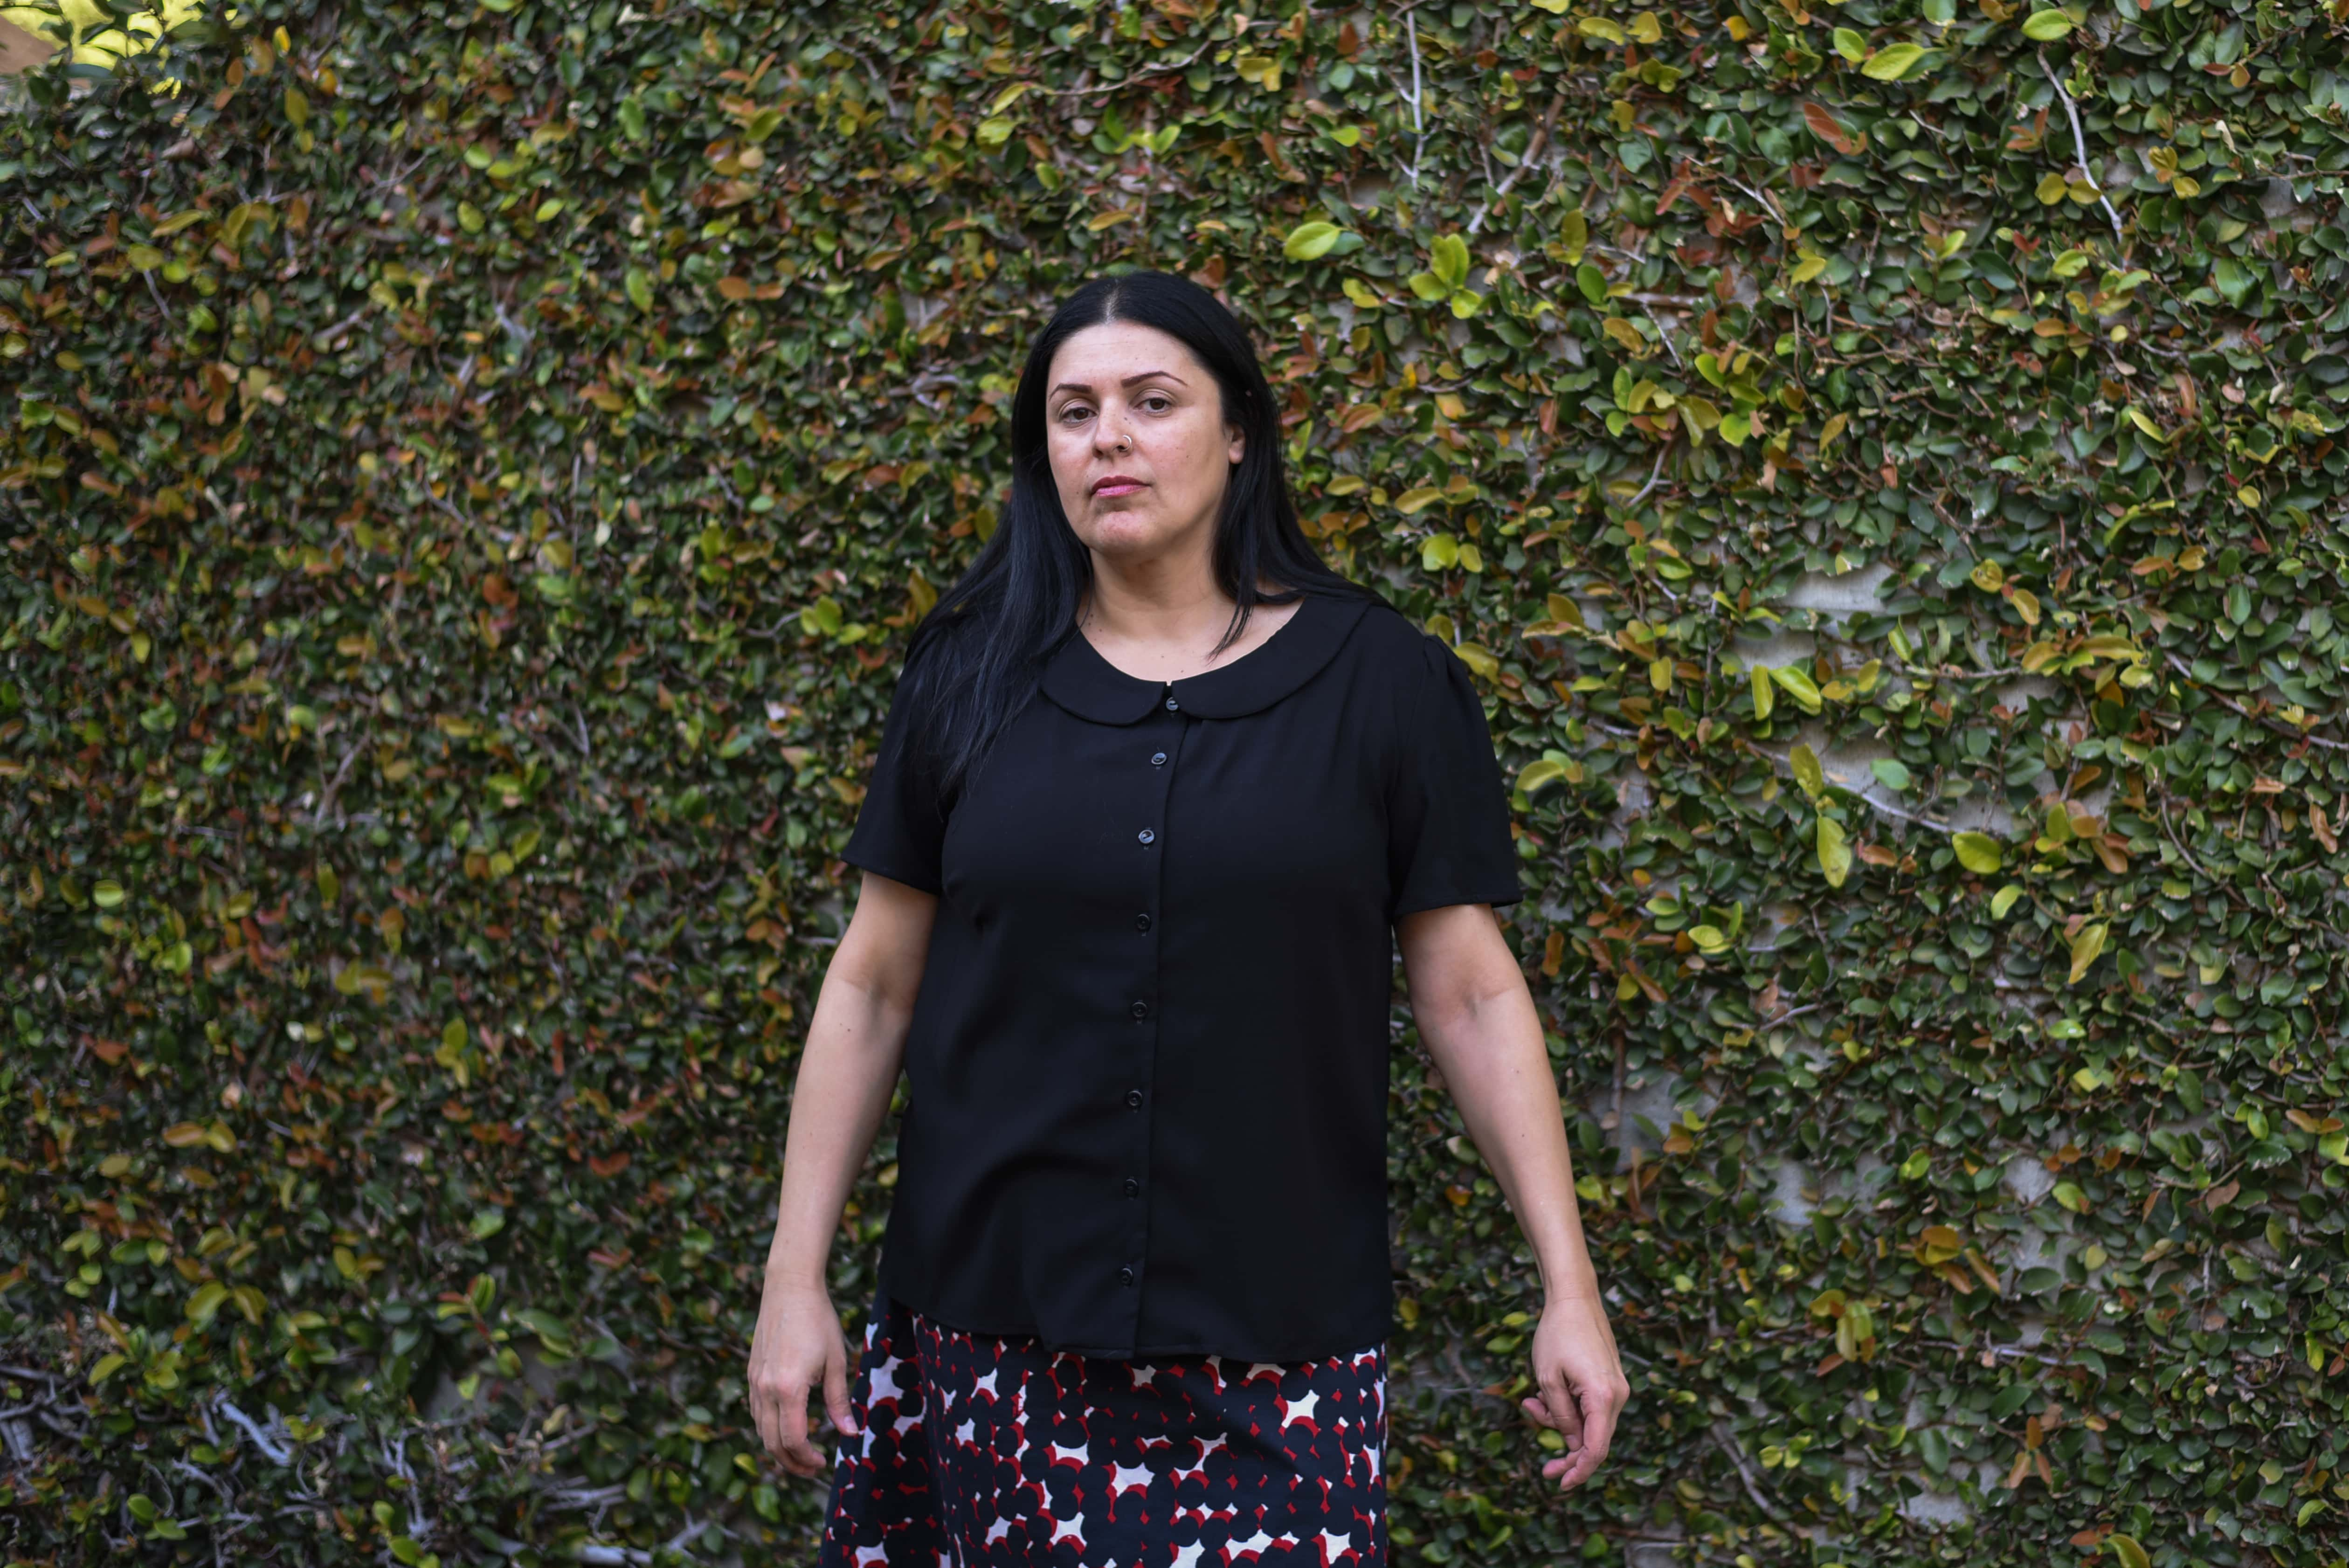 Image of a woman with long black hair wearing a black blouse with a Peter Pan collar and a white, red, and black skirt in front of a wall covered in vines